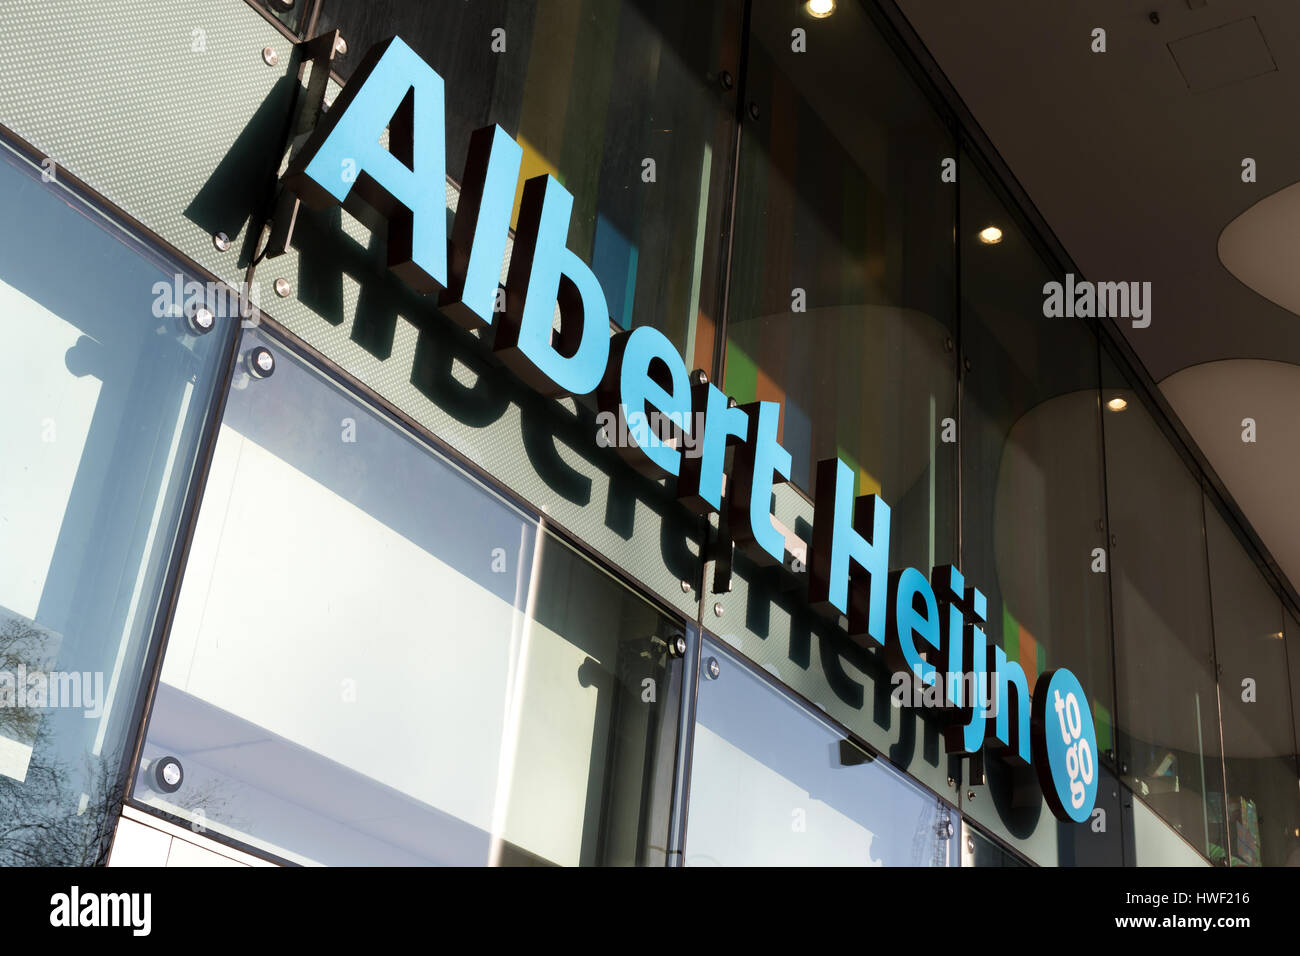 Albert Heijn to go convenience store in Cologne/ Germany. Albert Heijn is the largest Dutch supermarket chain, founded - Stock Image